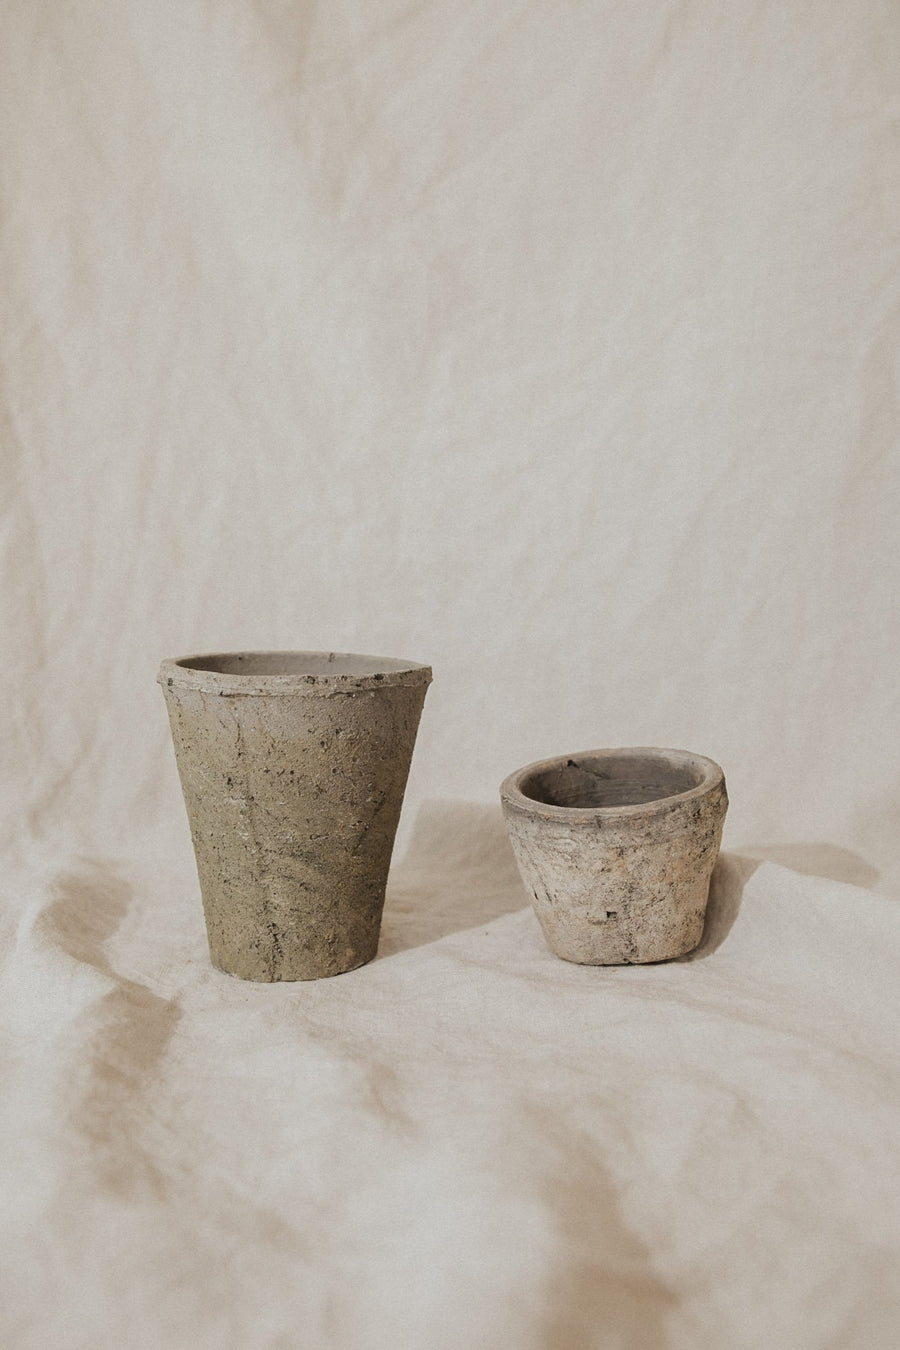 Homart Objects Moss Grey Rustic Terracotta Pots